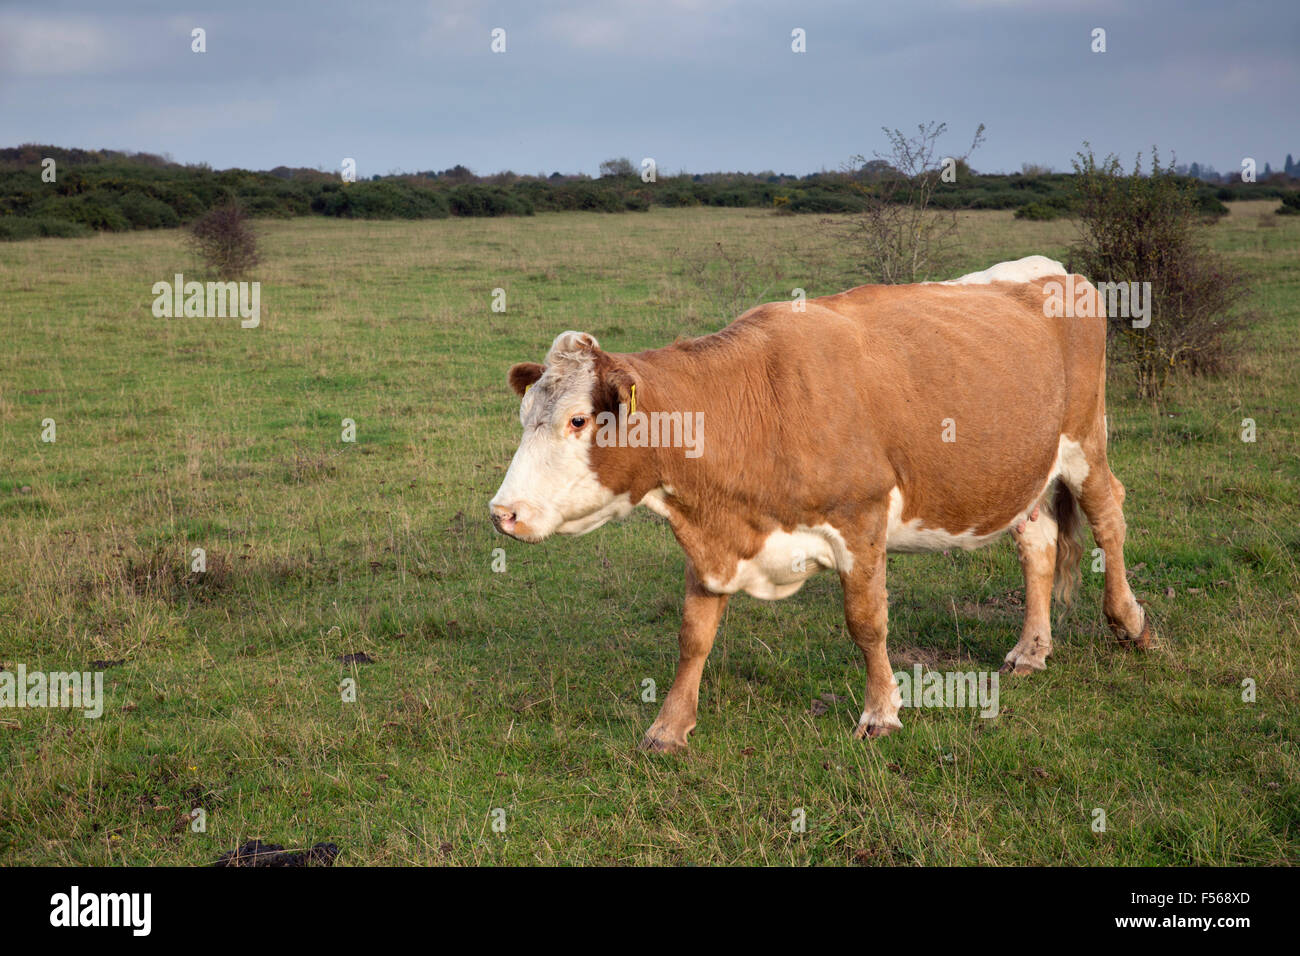 Vaca; de Greenham Common, Berkshire, Reino Unido Imagen De Stock